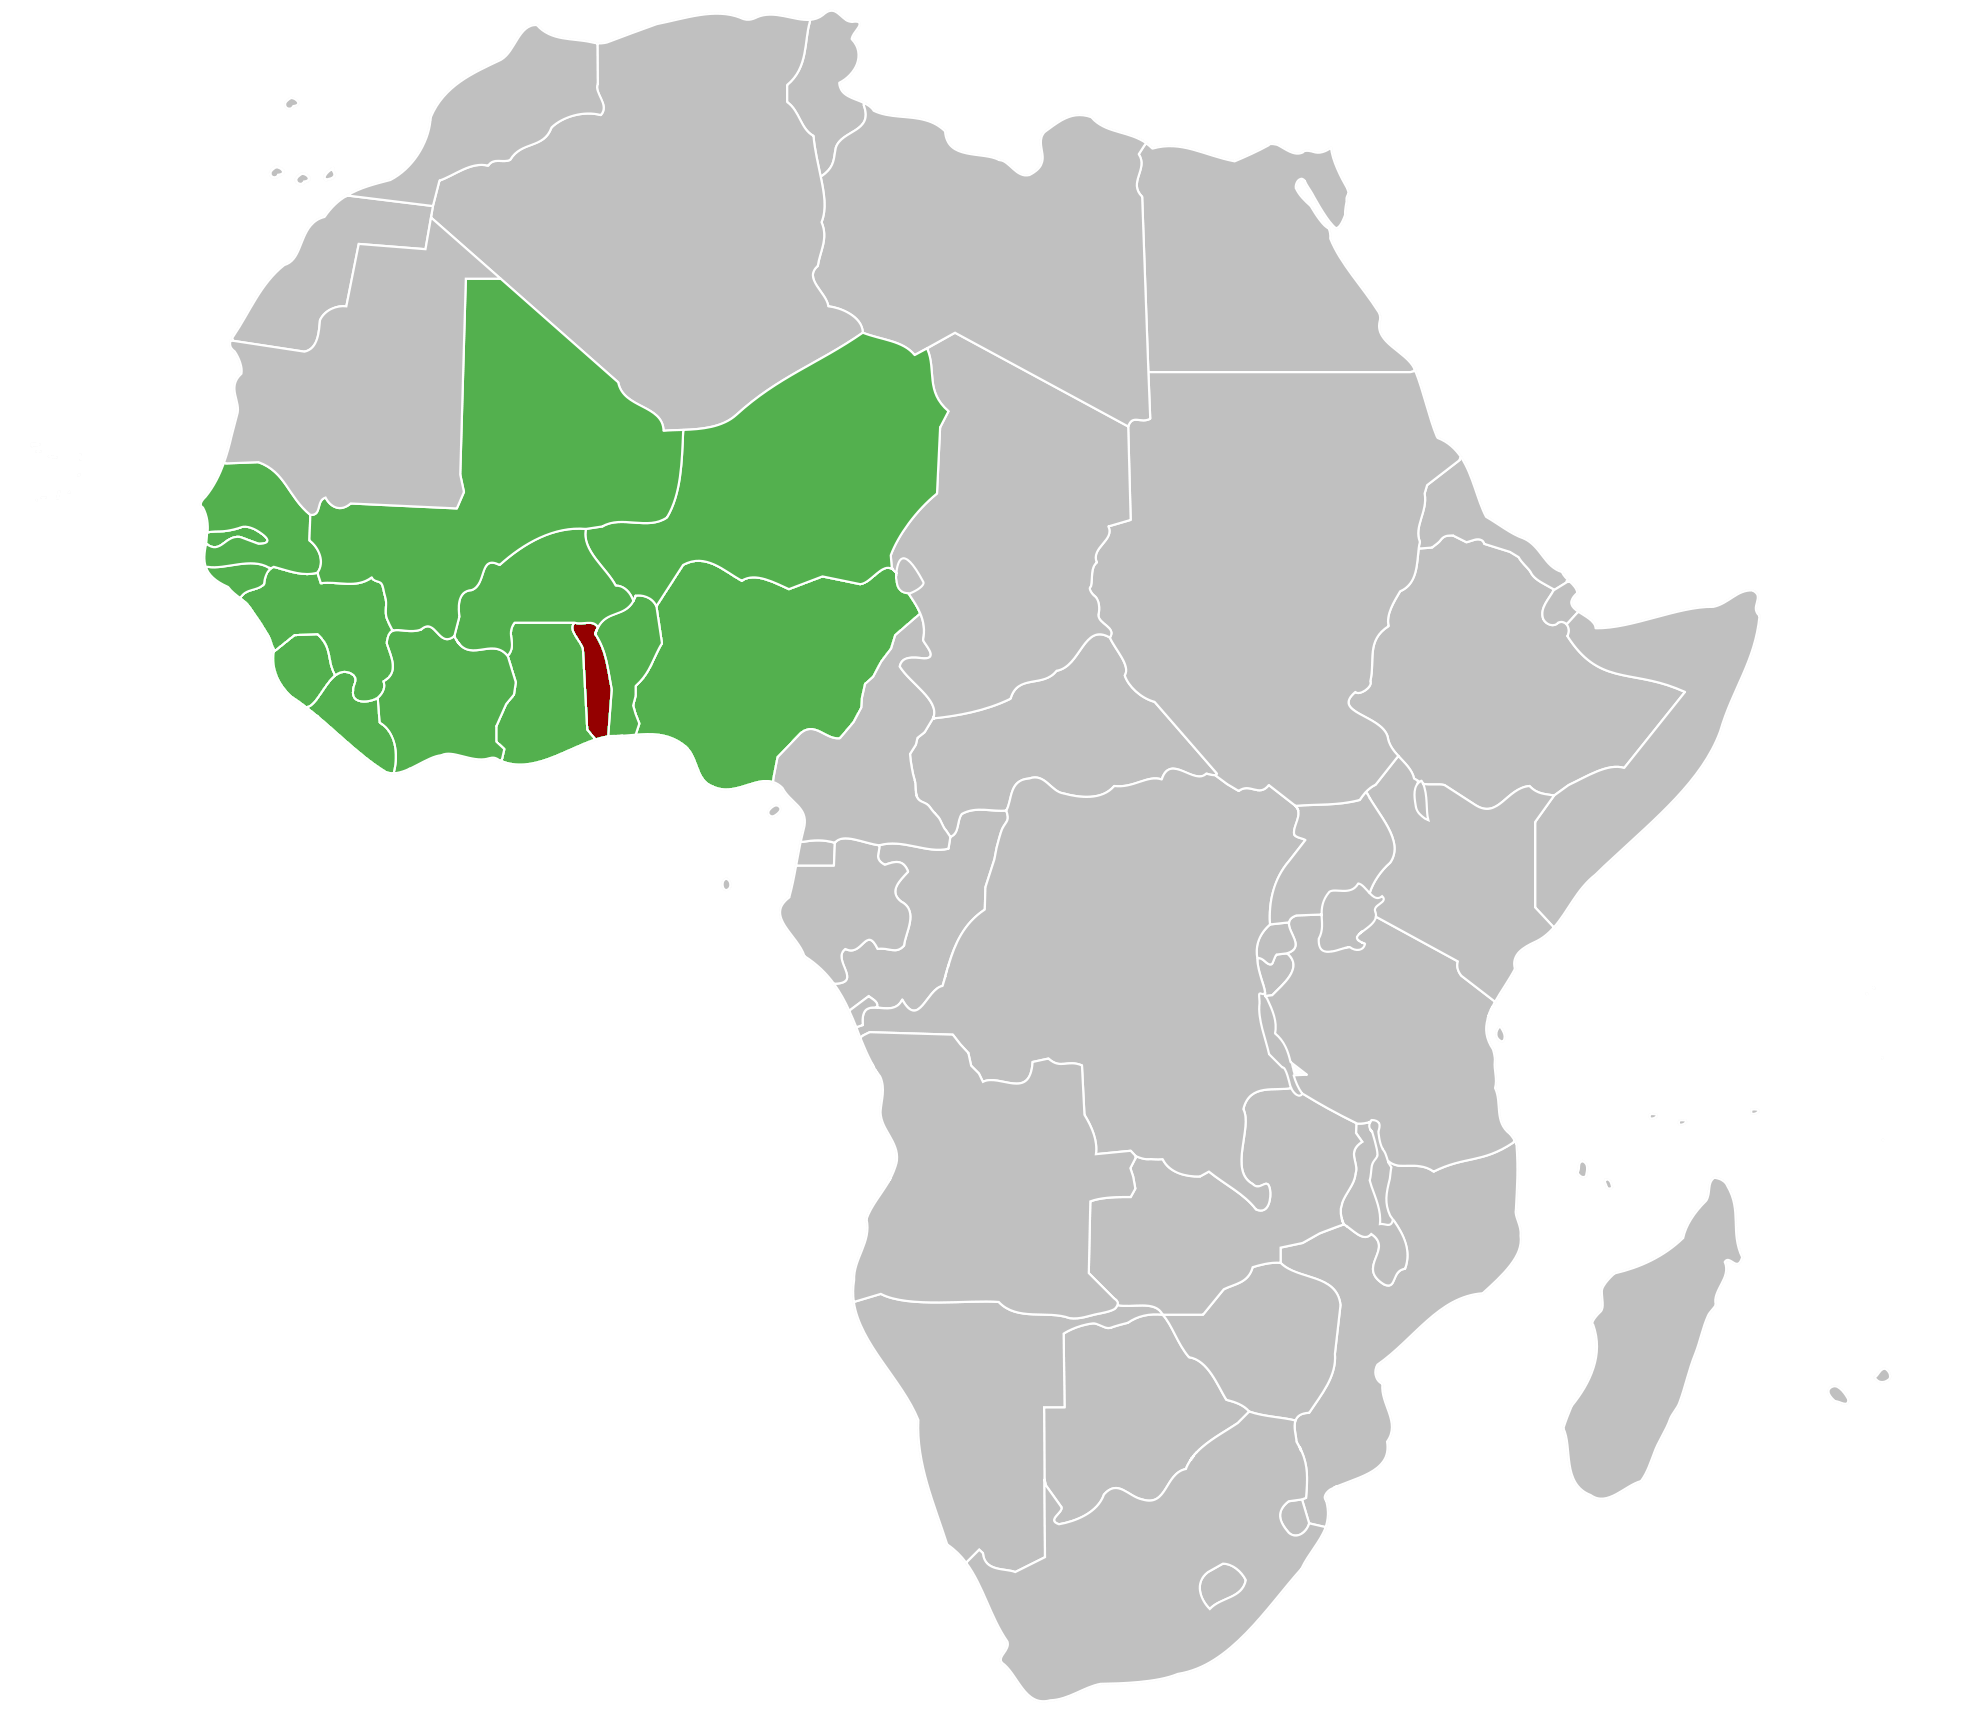 ECOWAS countries (green) with Togo (red).